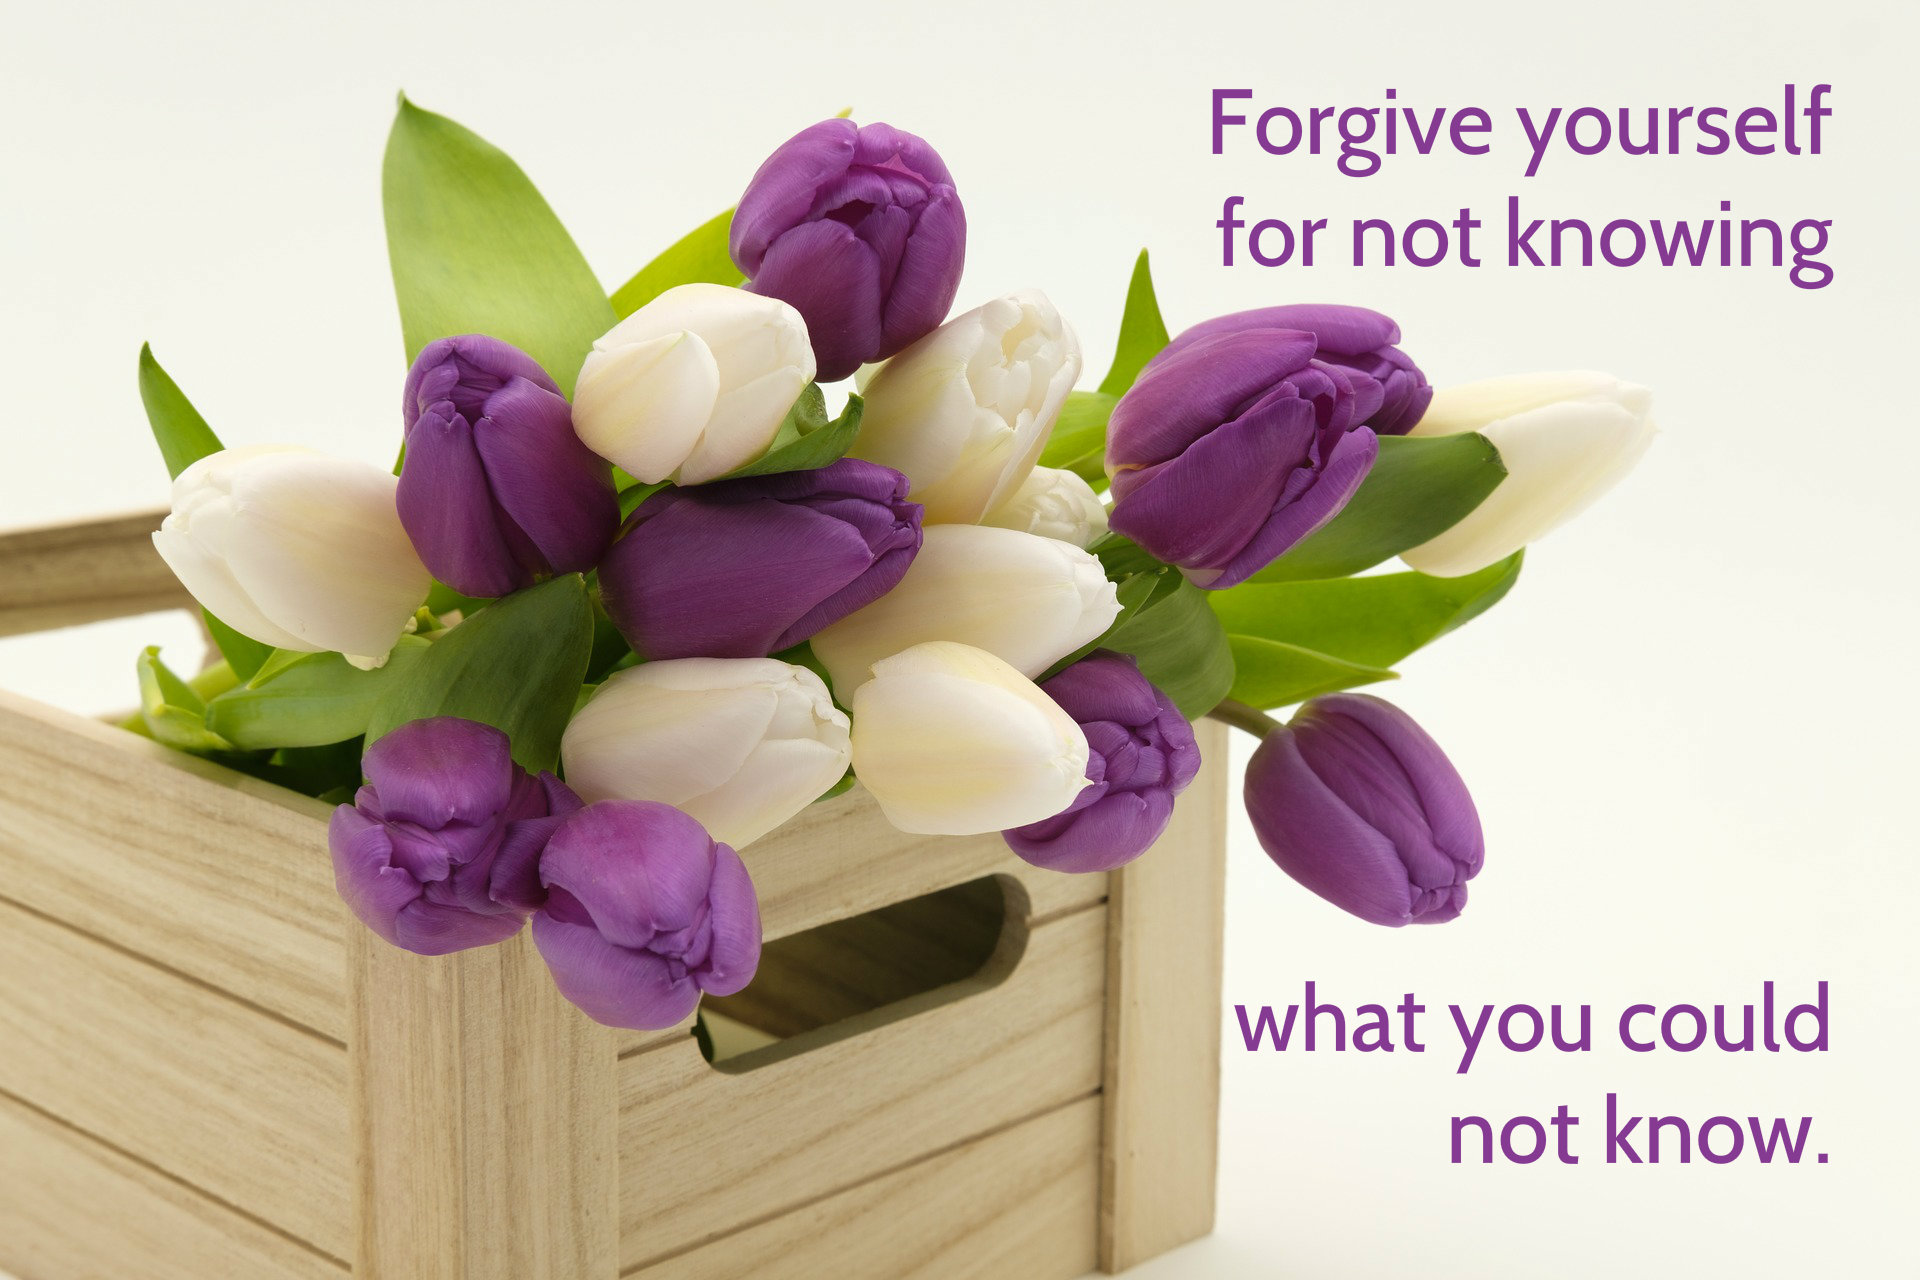 Forgive yourself for not knowing what you could not know quote on background of basket of spring tulips on blog about regret around not removing an icy patch that played a role in a tragedy.